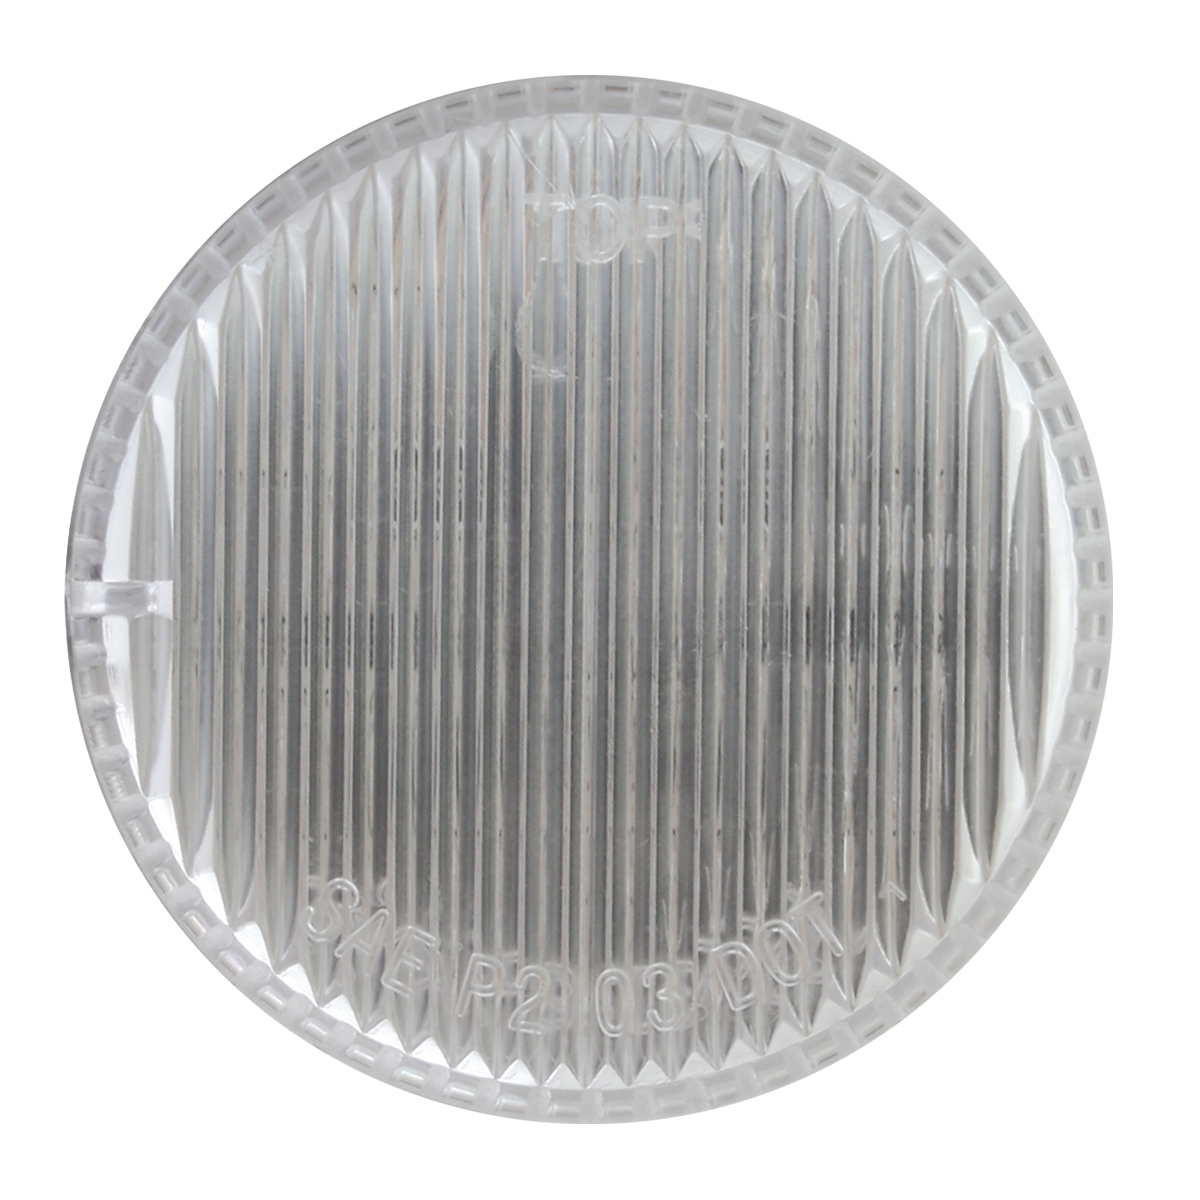 "2"" Round Fleet LED Marker Light in Clear Lens"